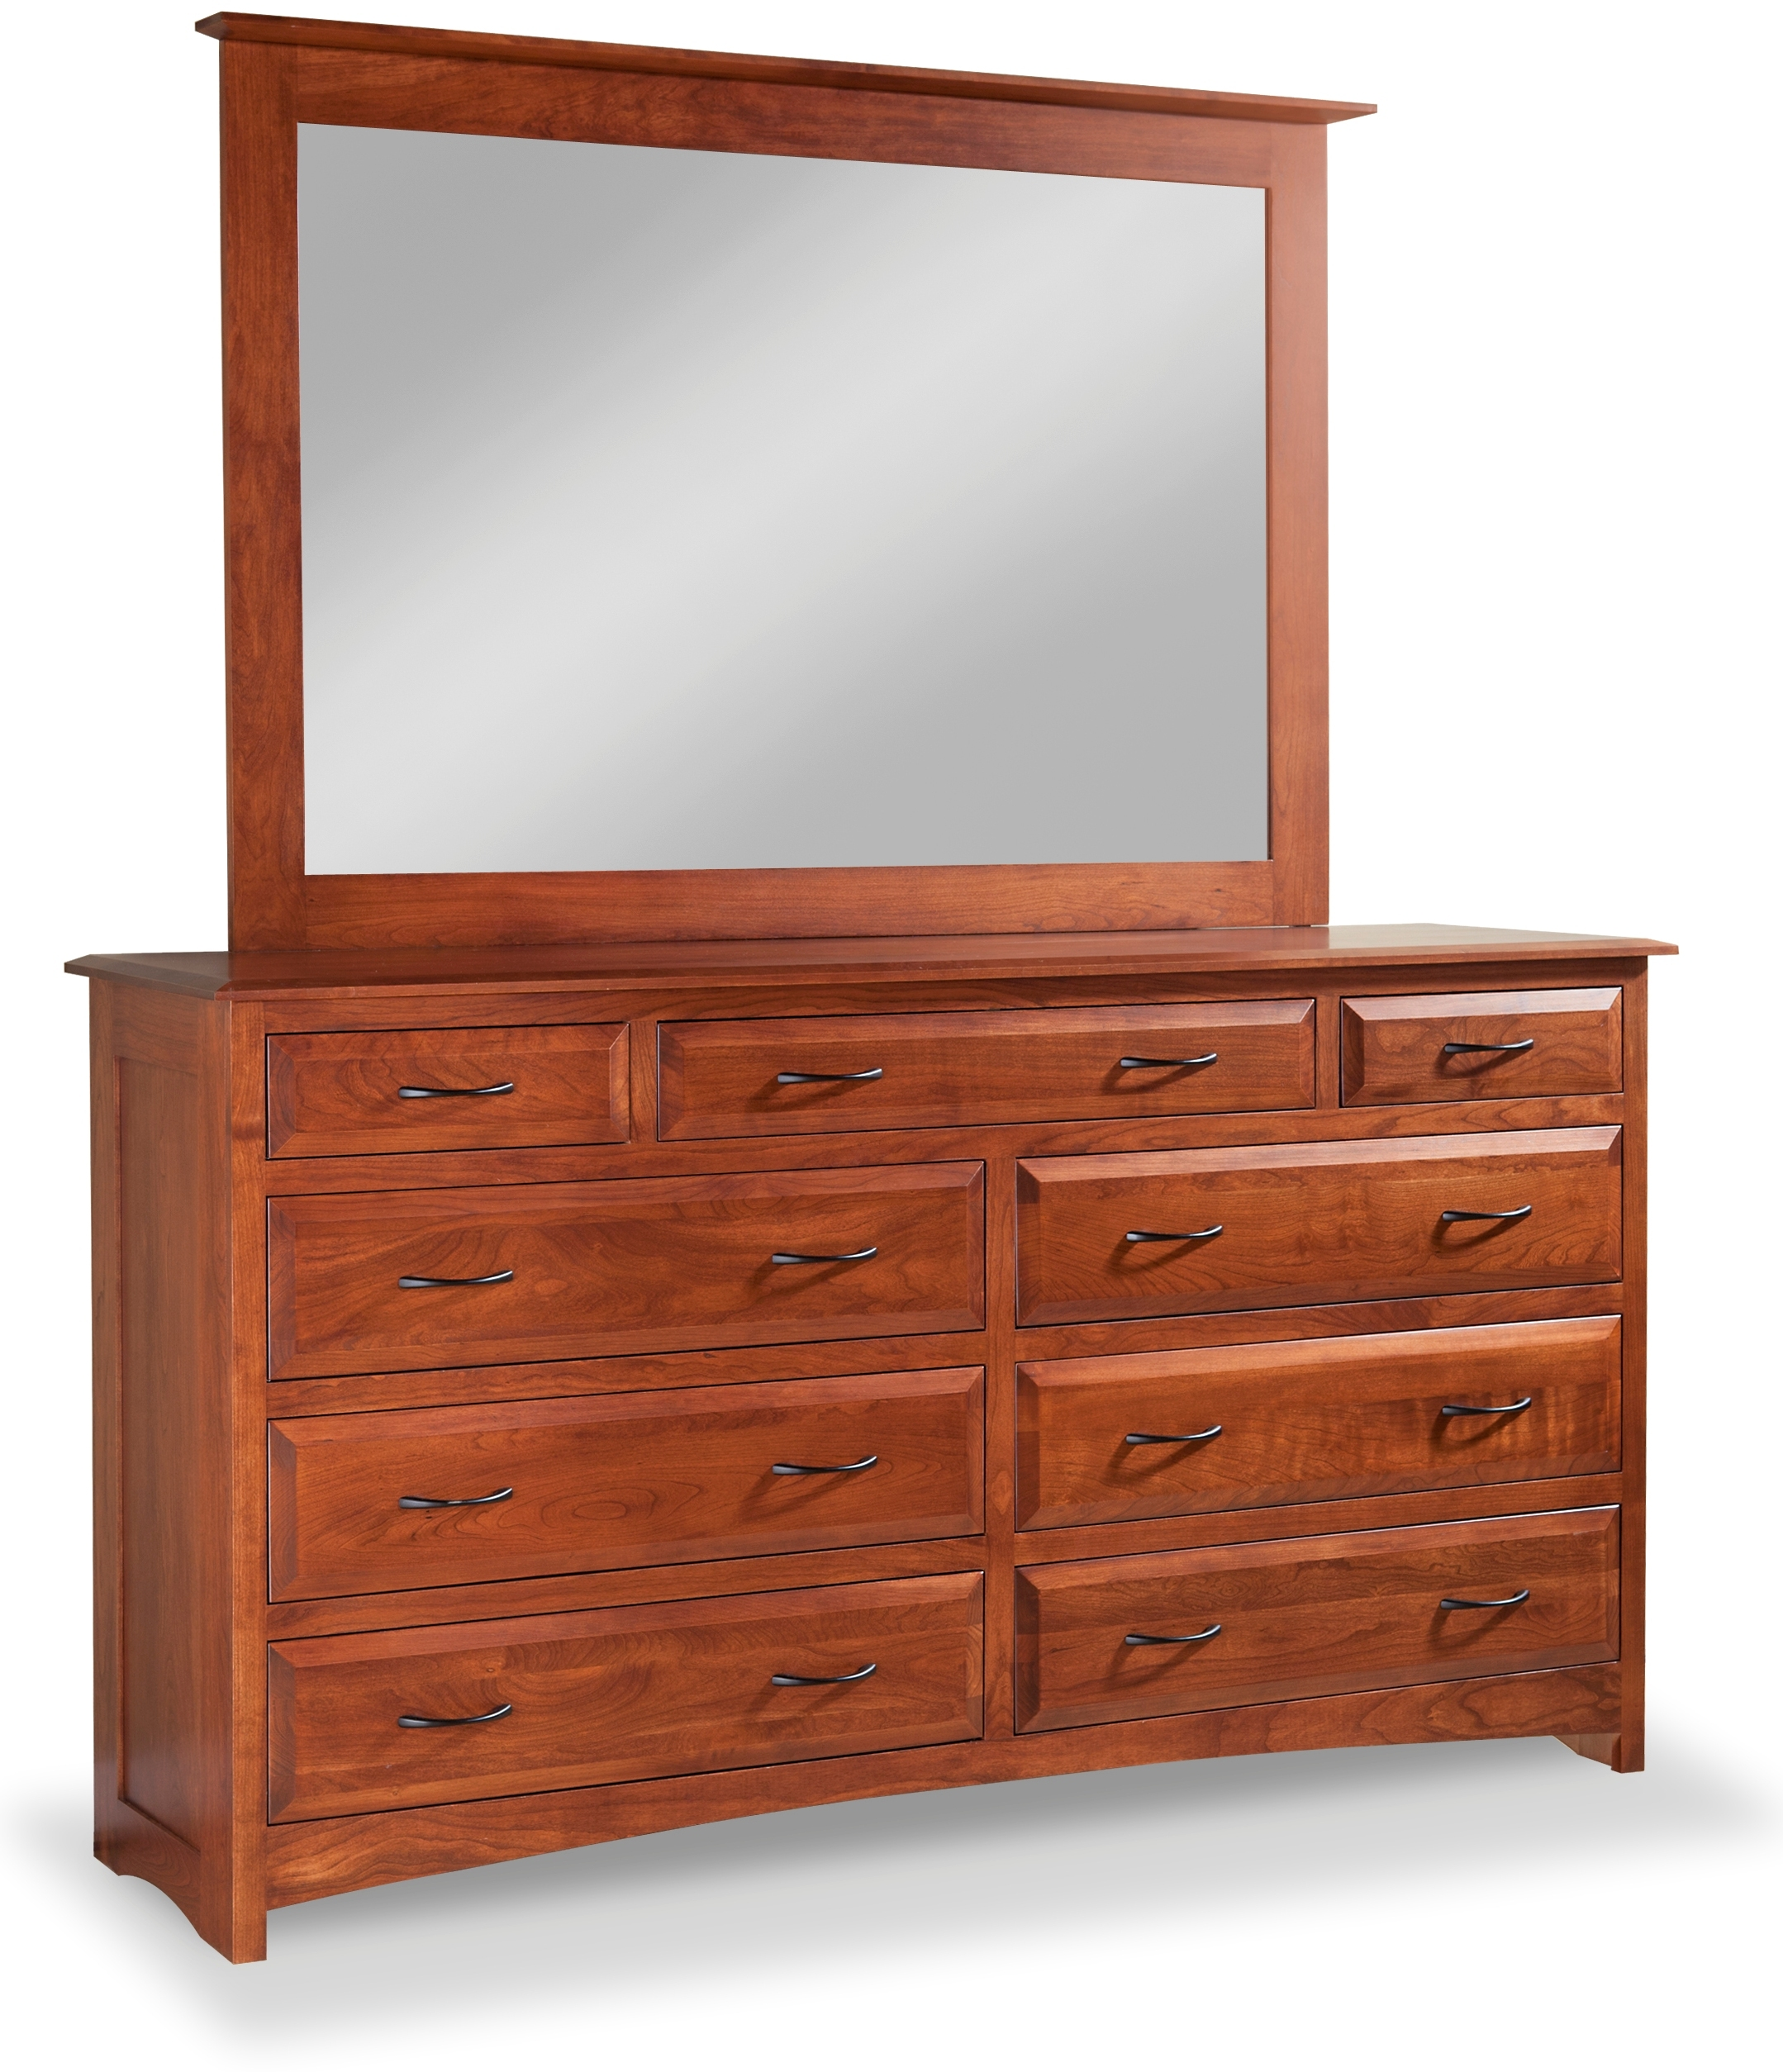 Simplicity 9 Drawer Double Dresser With Tall Wide Mirror By Daniel S Amish Collection Nis694633977 Willis Furniture Mattress